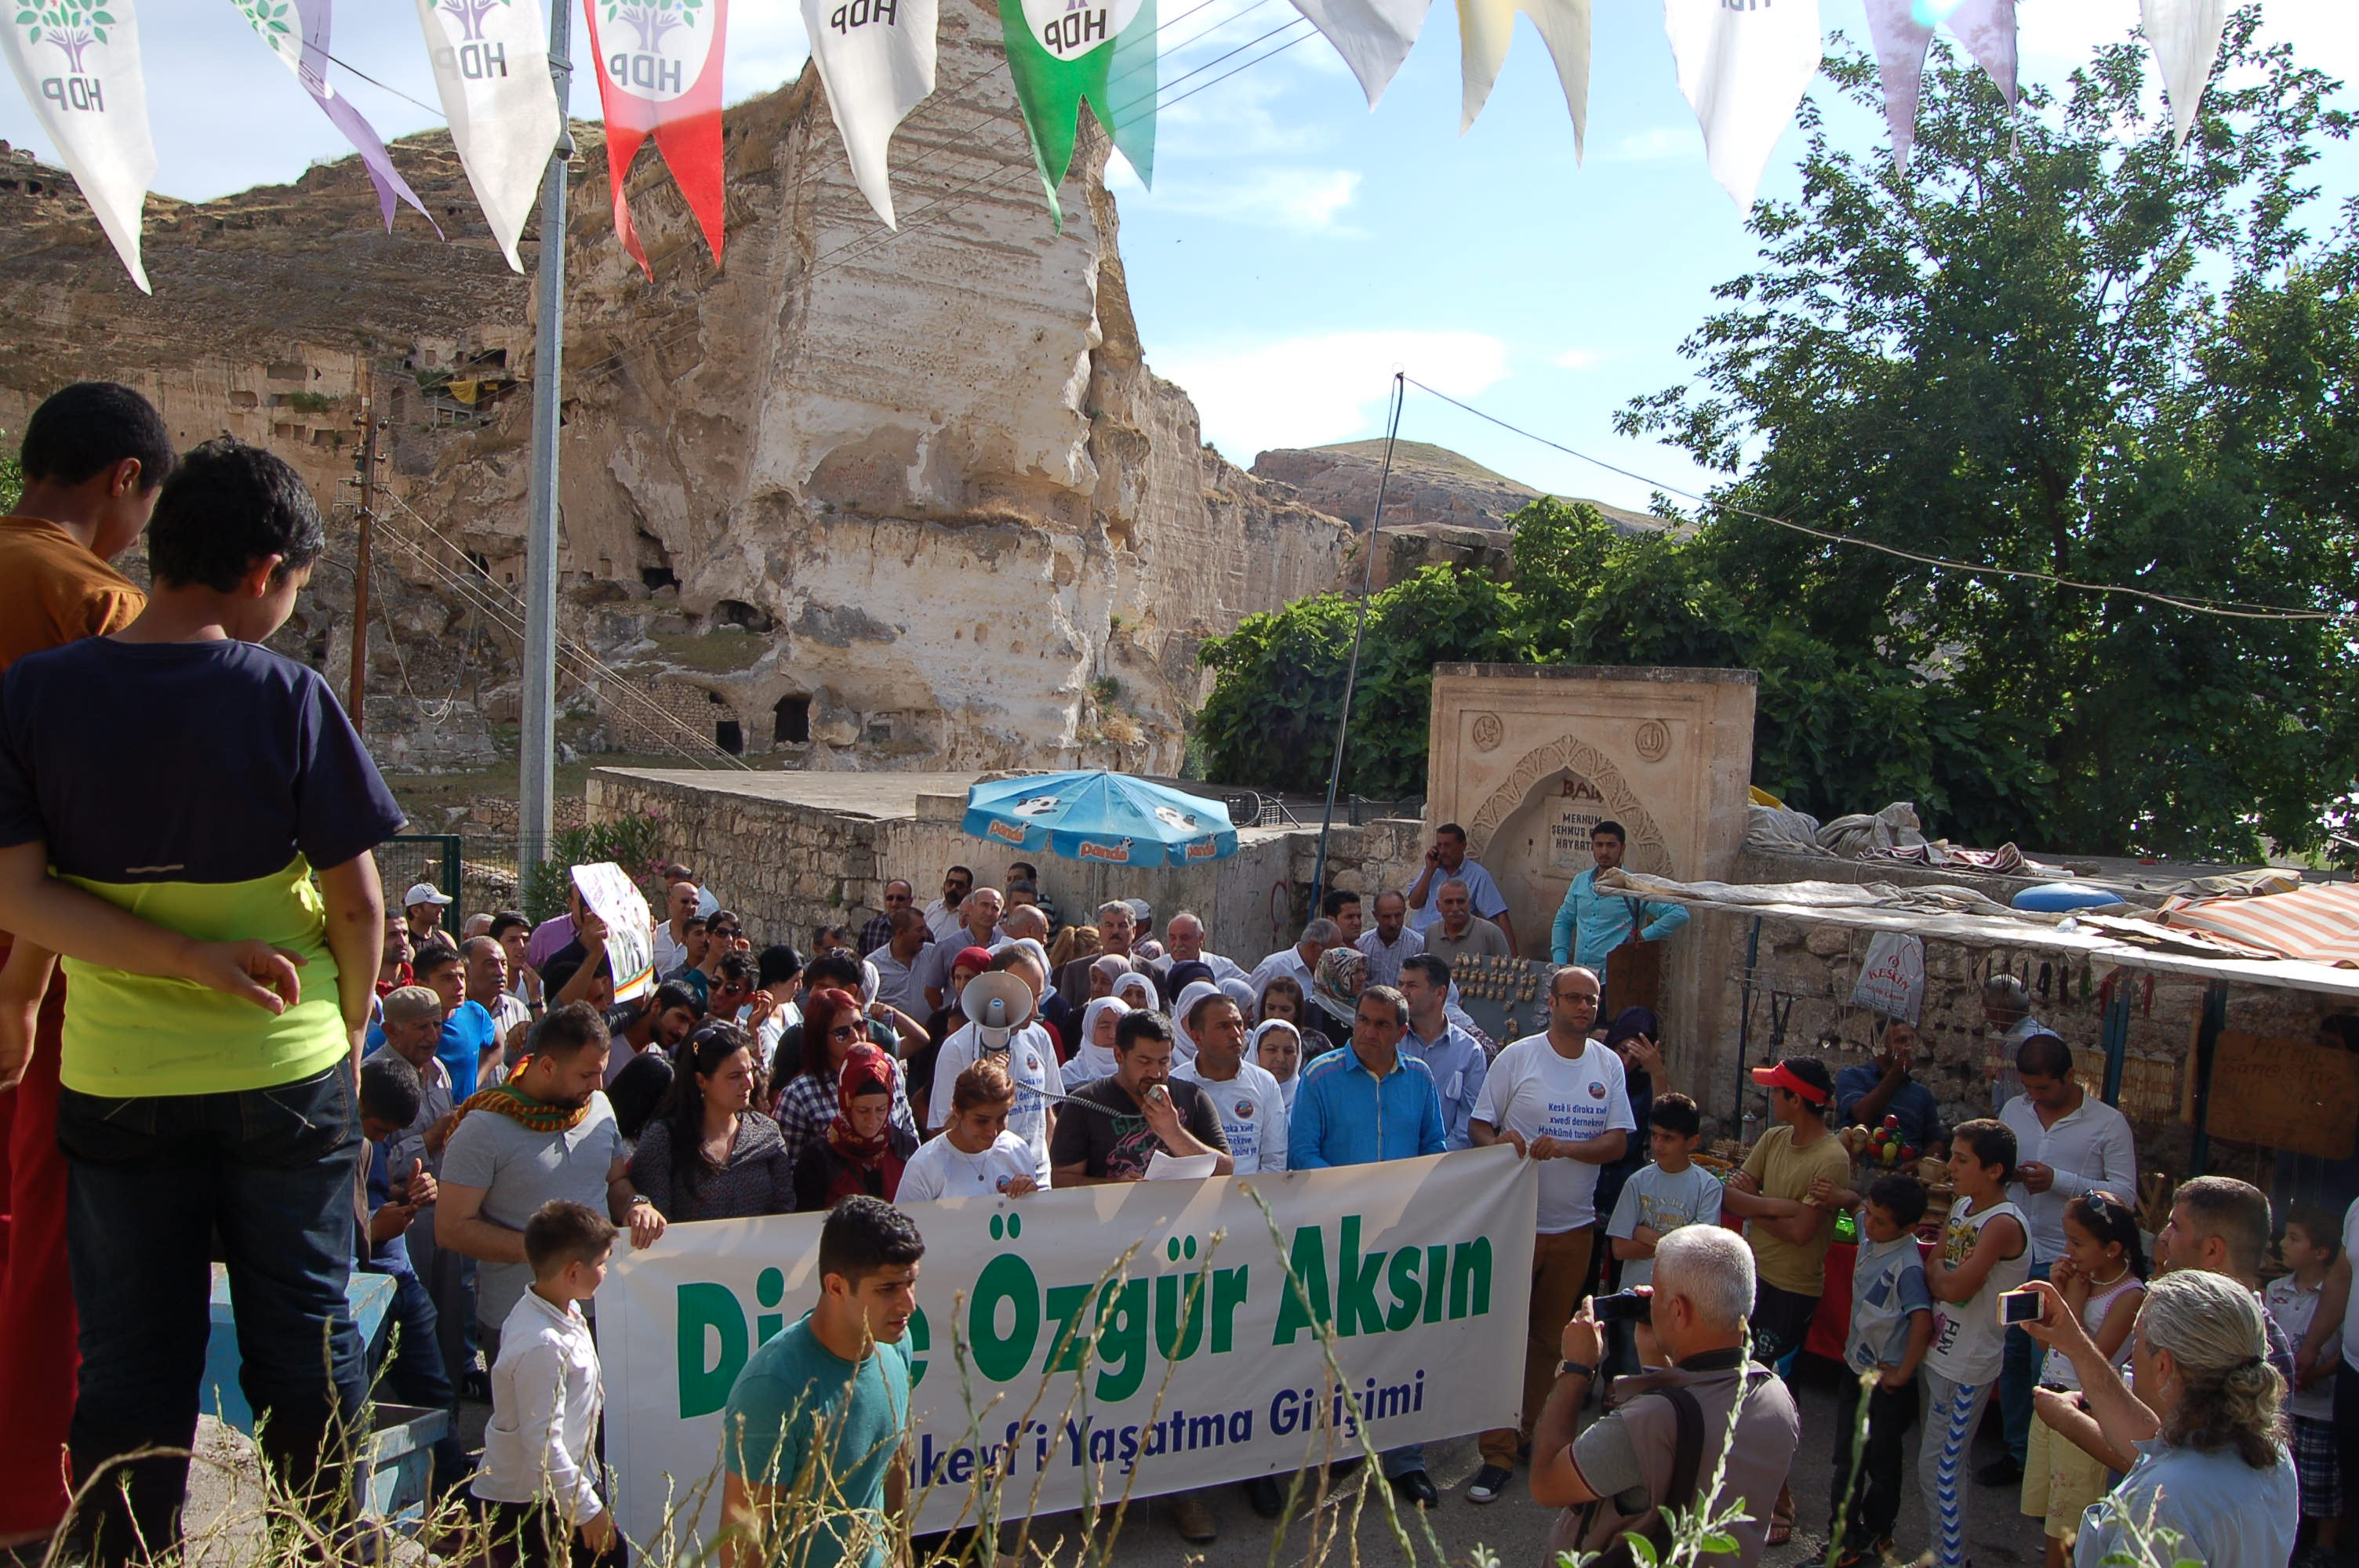 Recent protest in Hasankeyf against Ilisu Dam and the resettlement plans